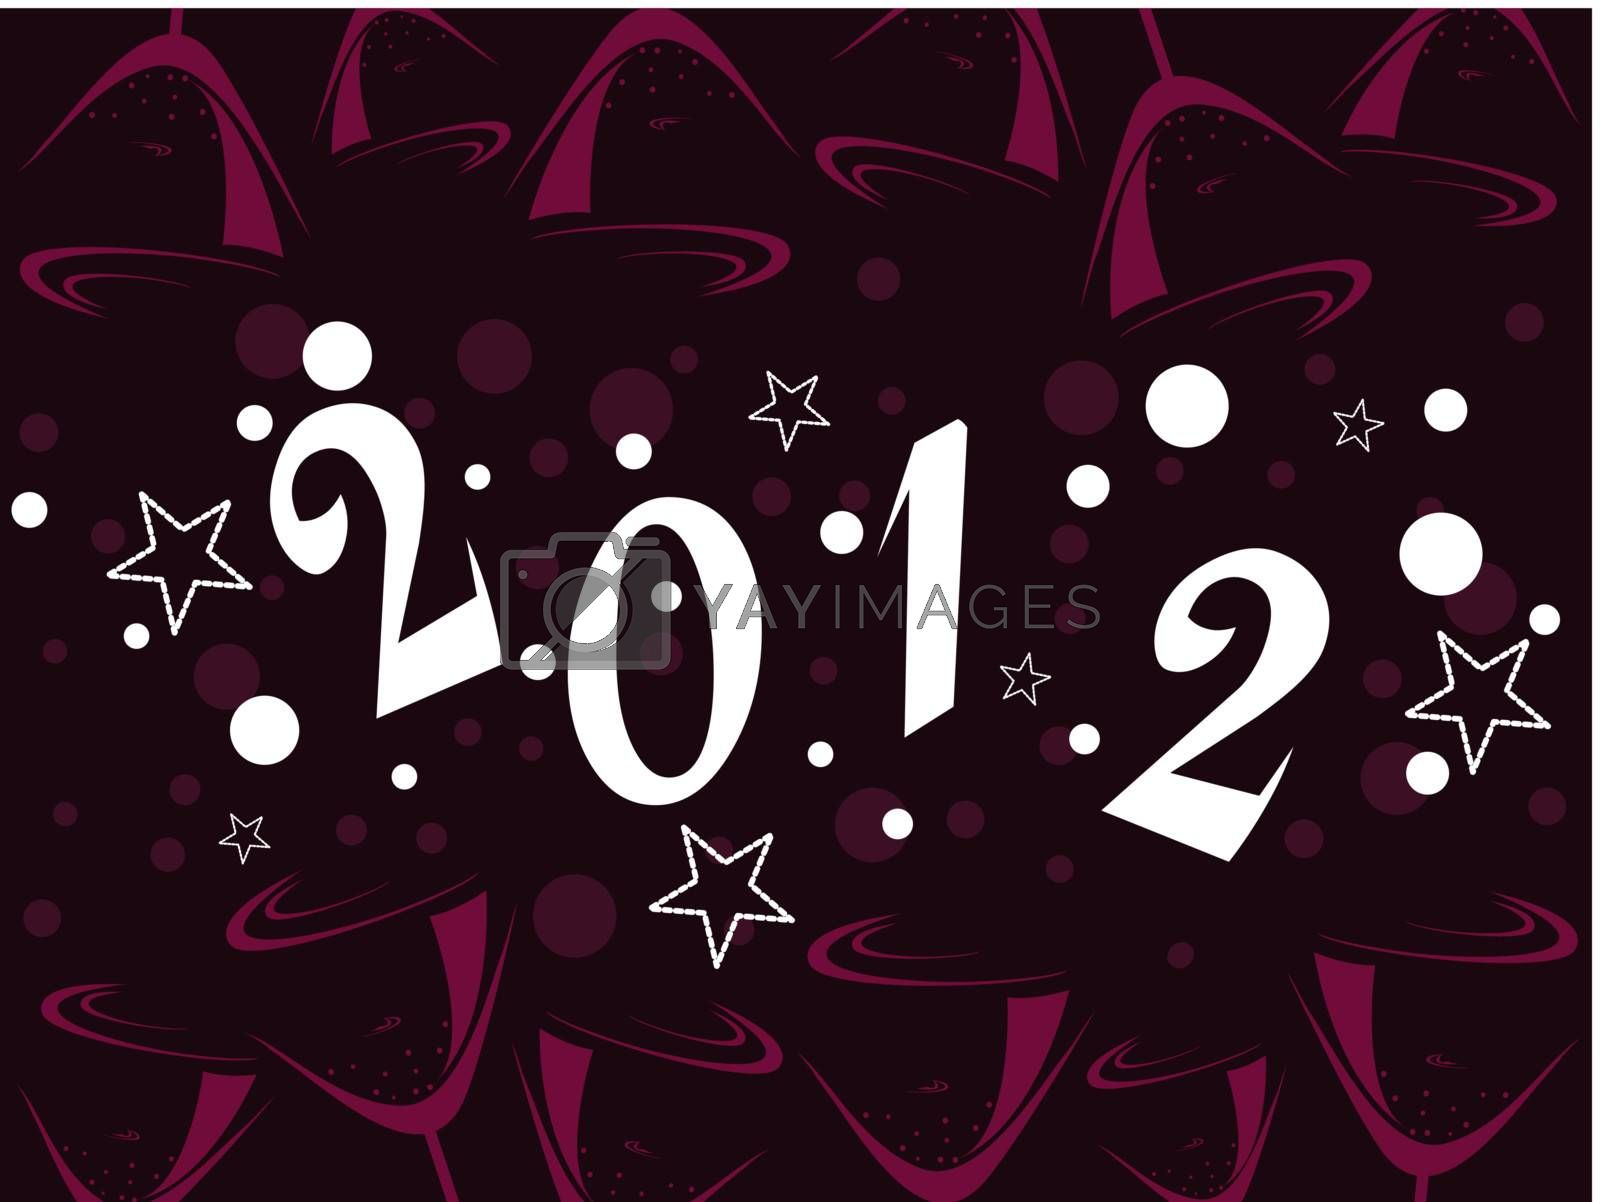 vector illustration with stylish text for new year